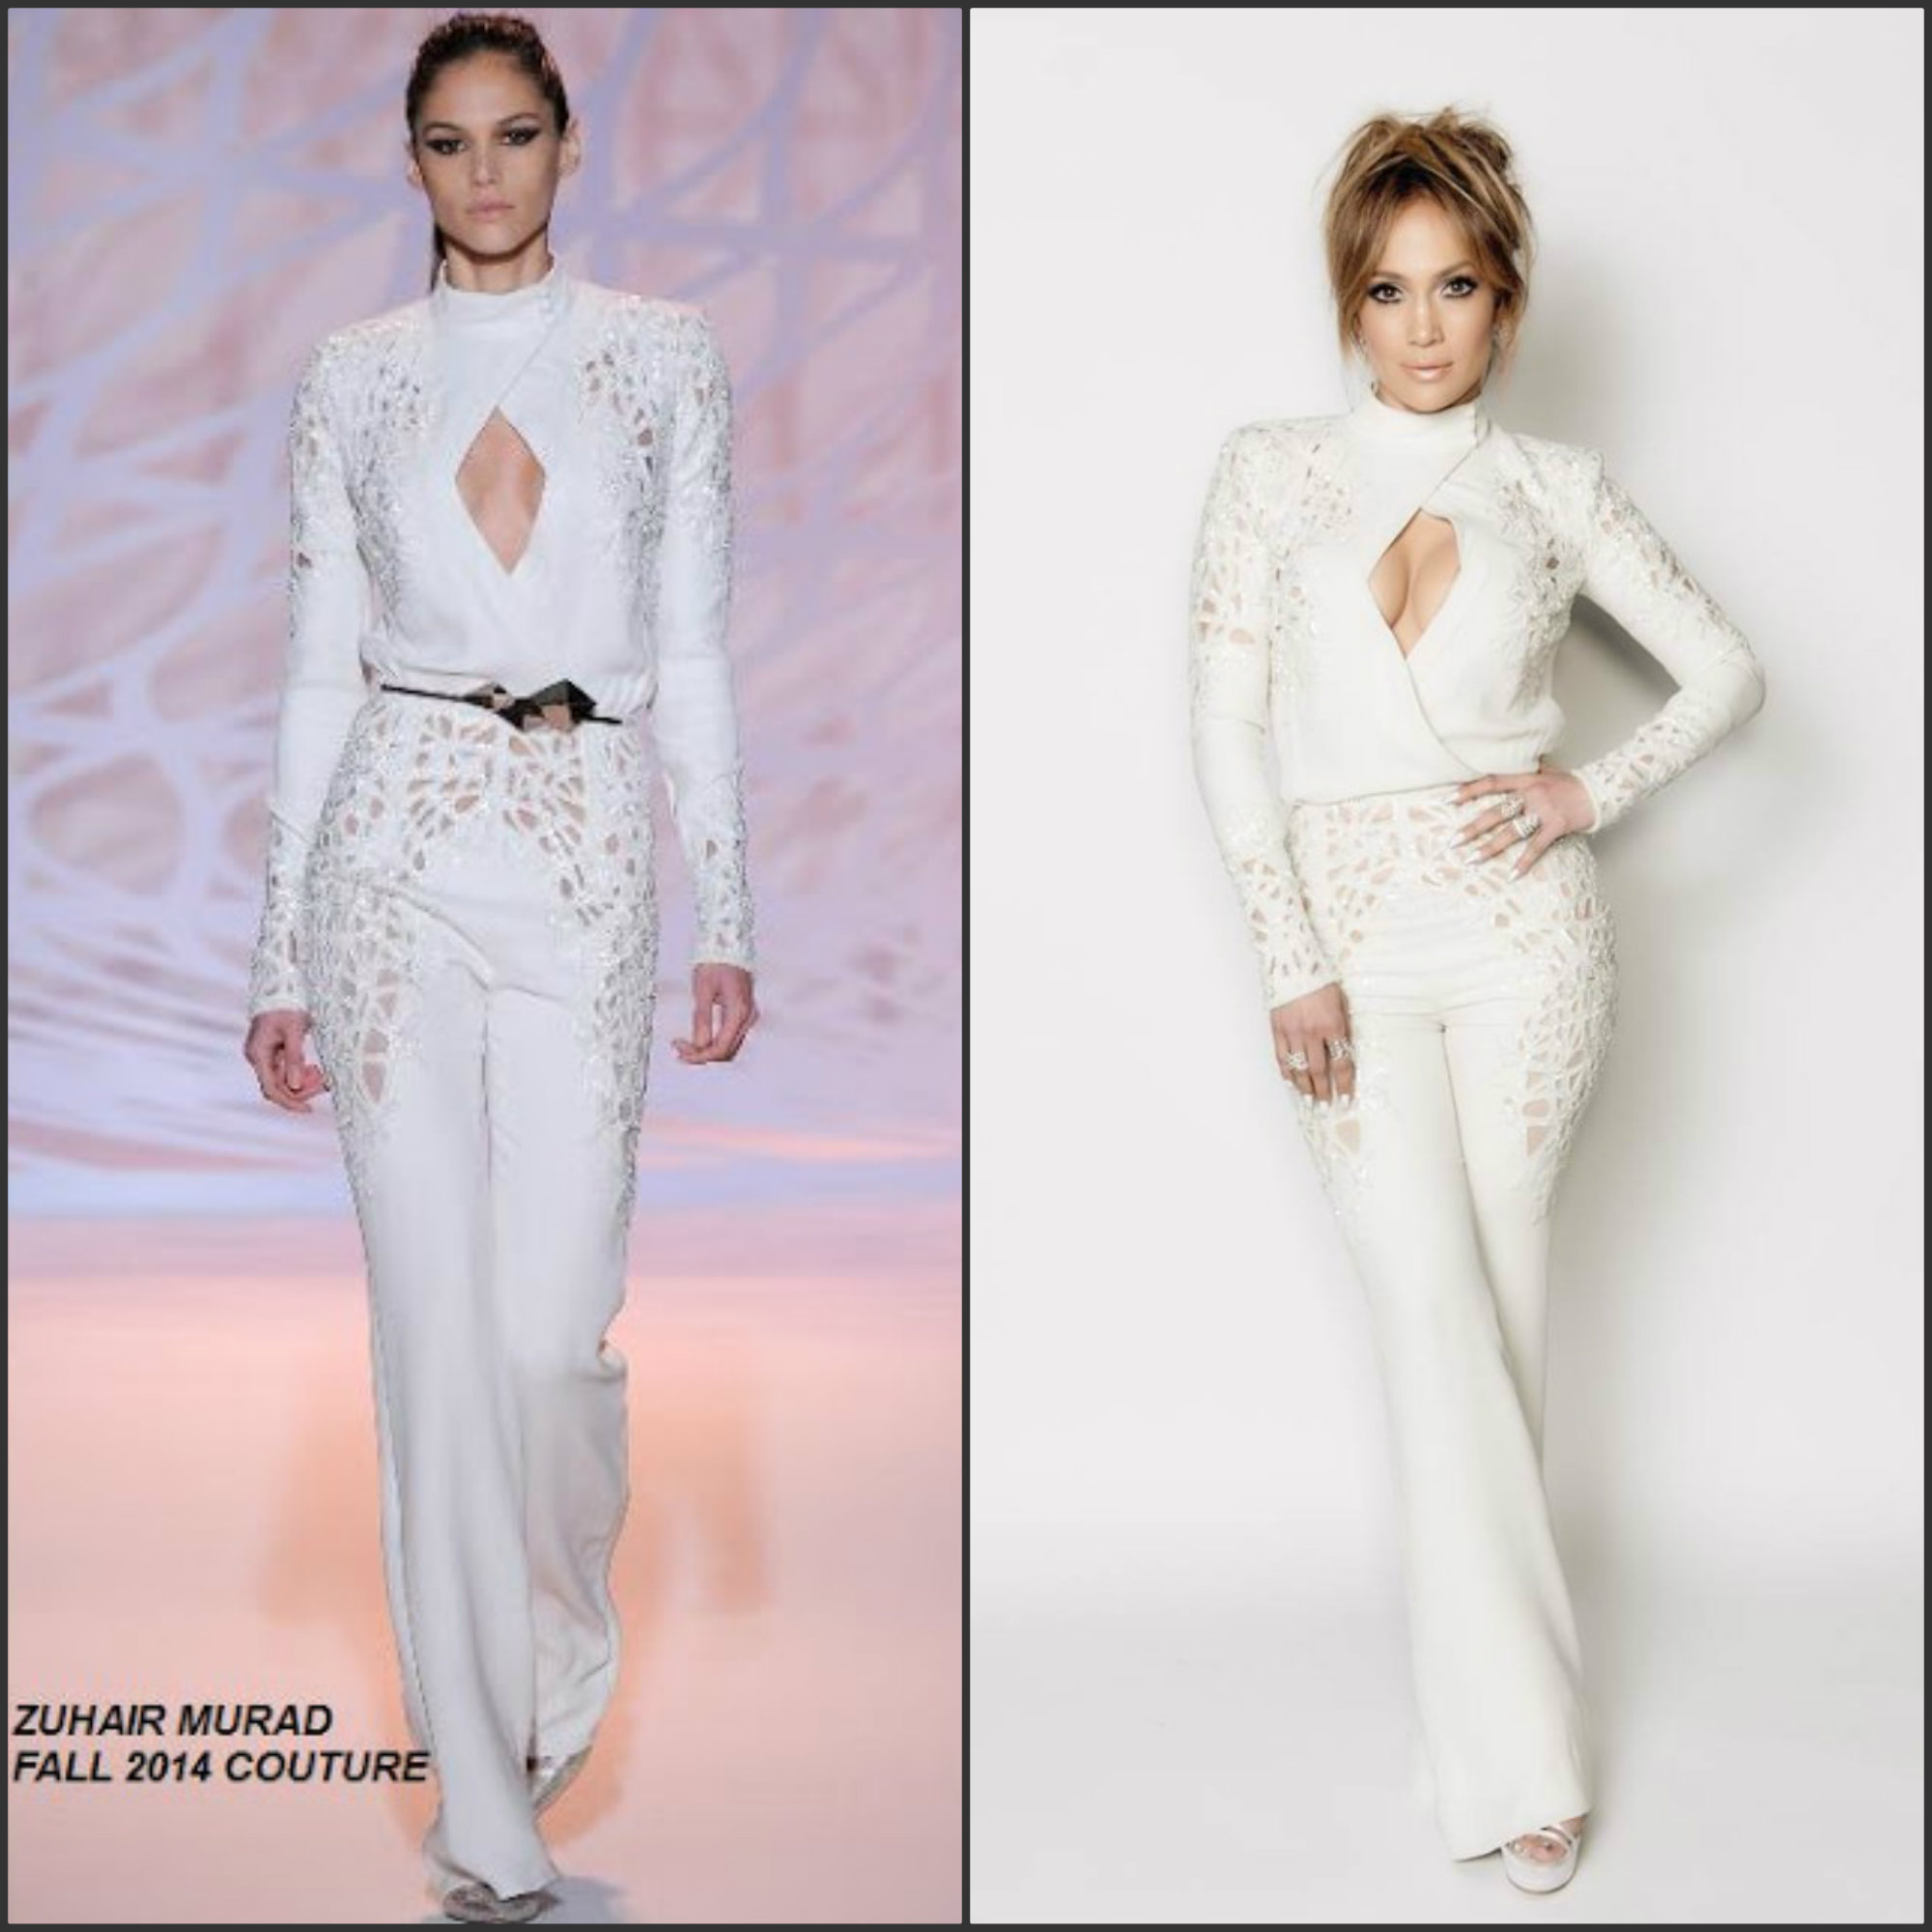 jennifer-lopez-in-zuhair-murad-couture-on-the-american-idol-14-top2-revealved-show